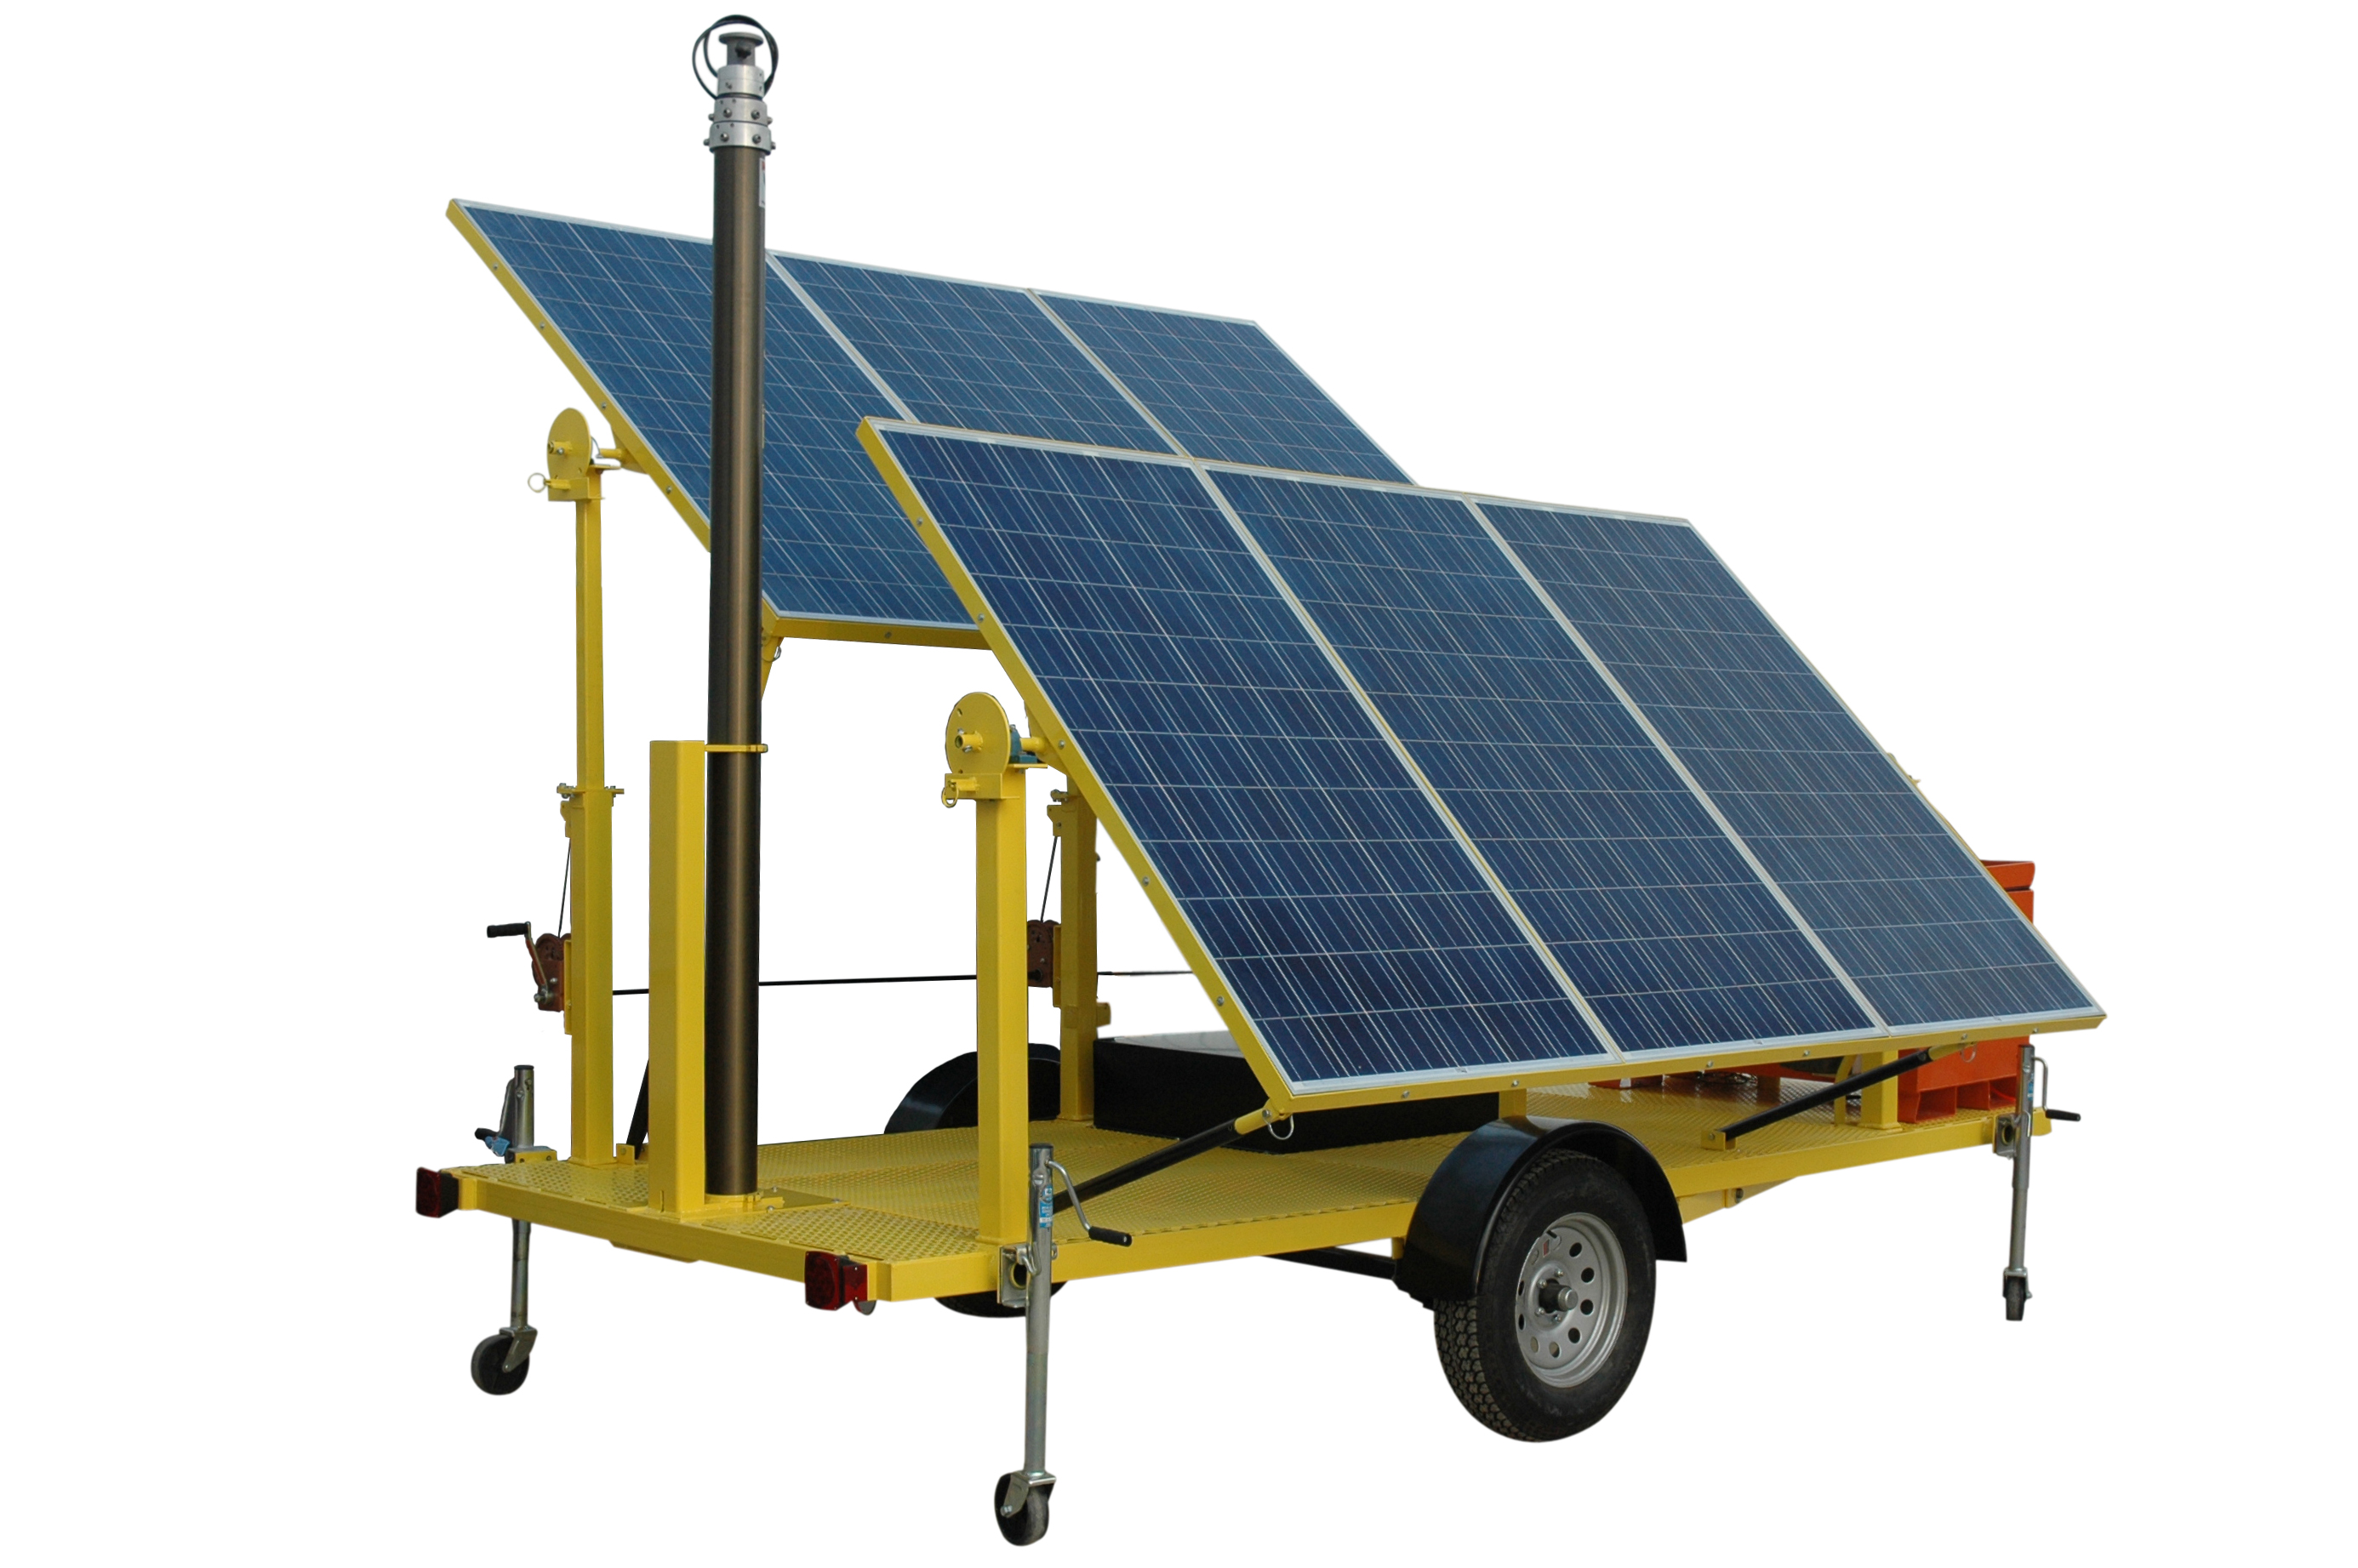 Larson Electronics Releases A Solar Powered Generator With